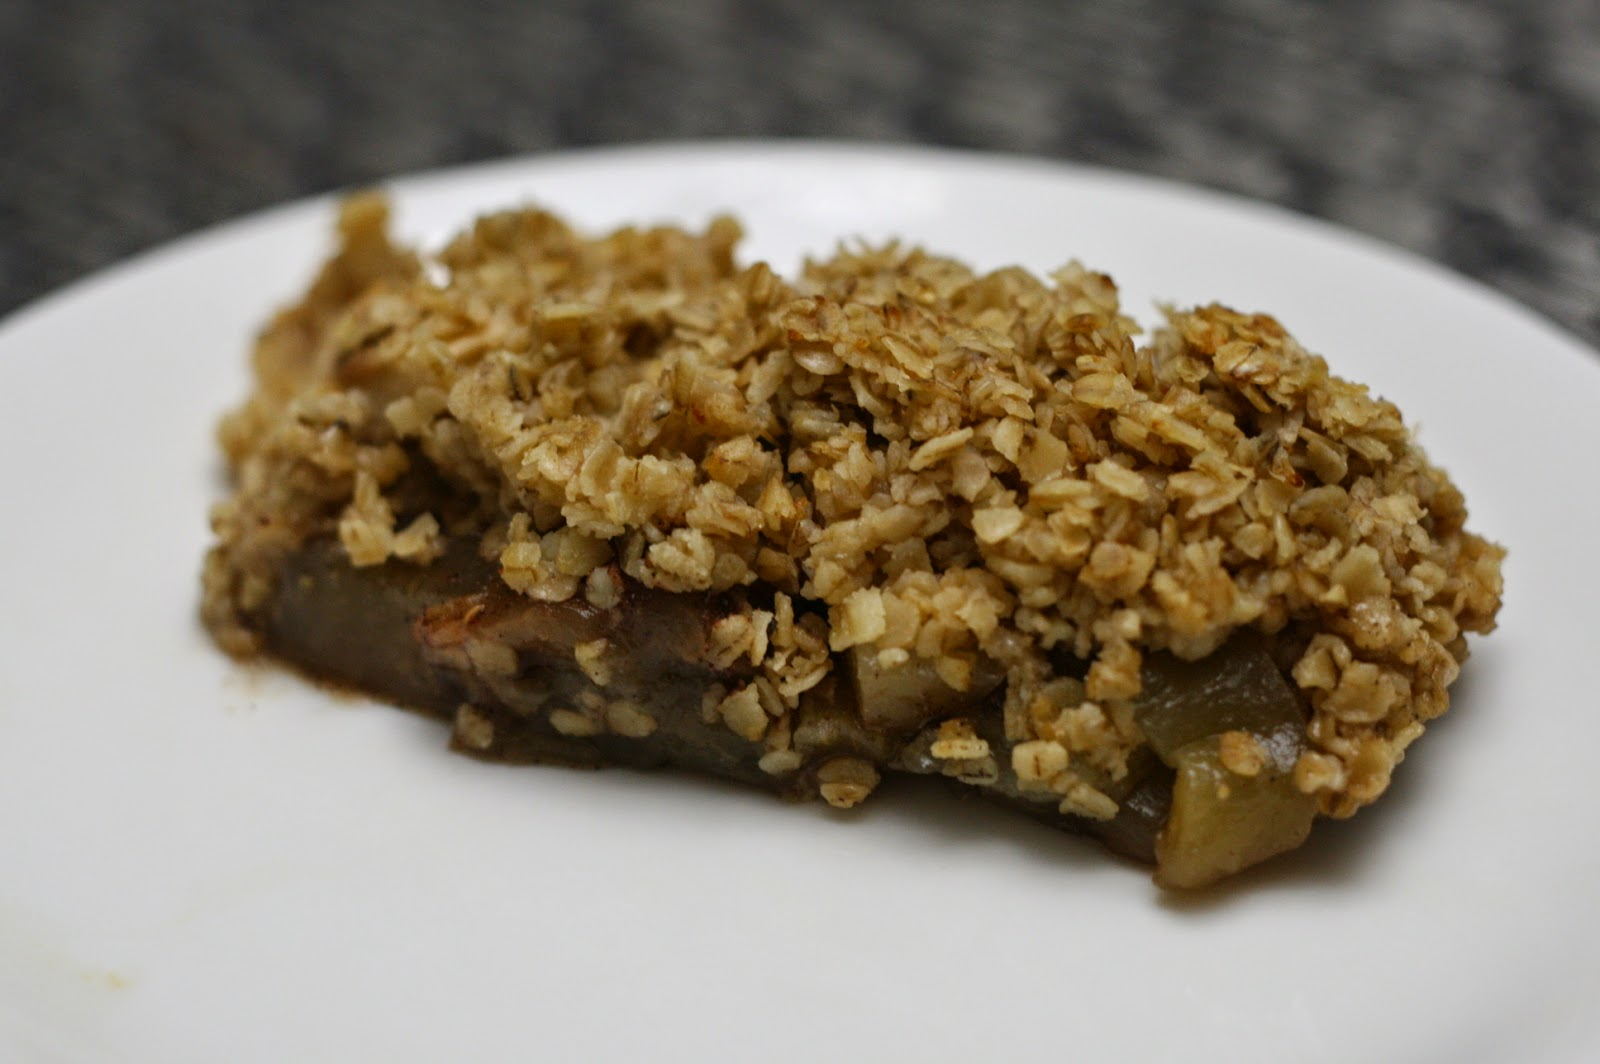 A plate of hot Aubergine Crisp.